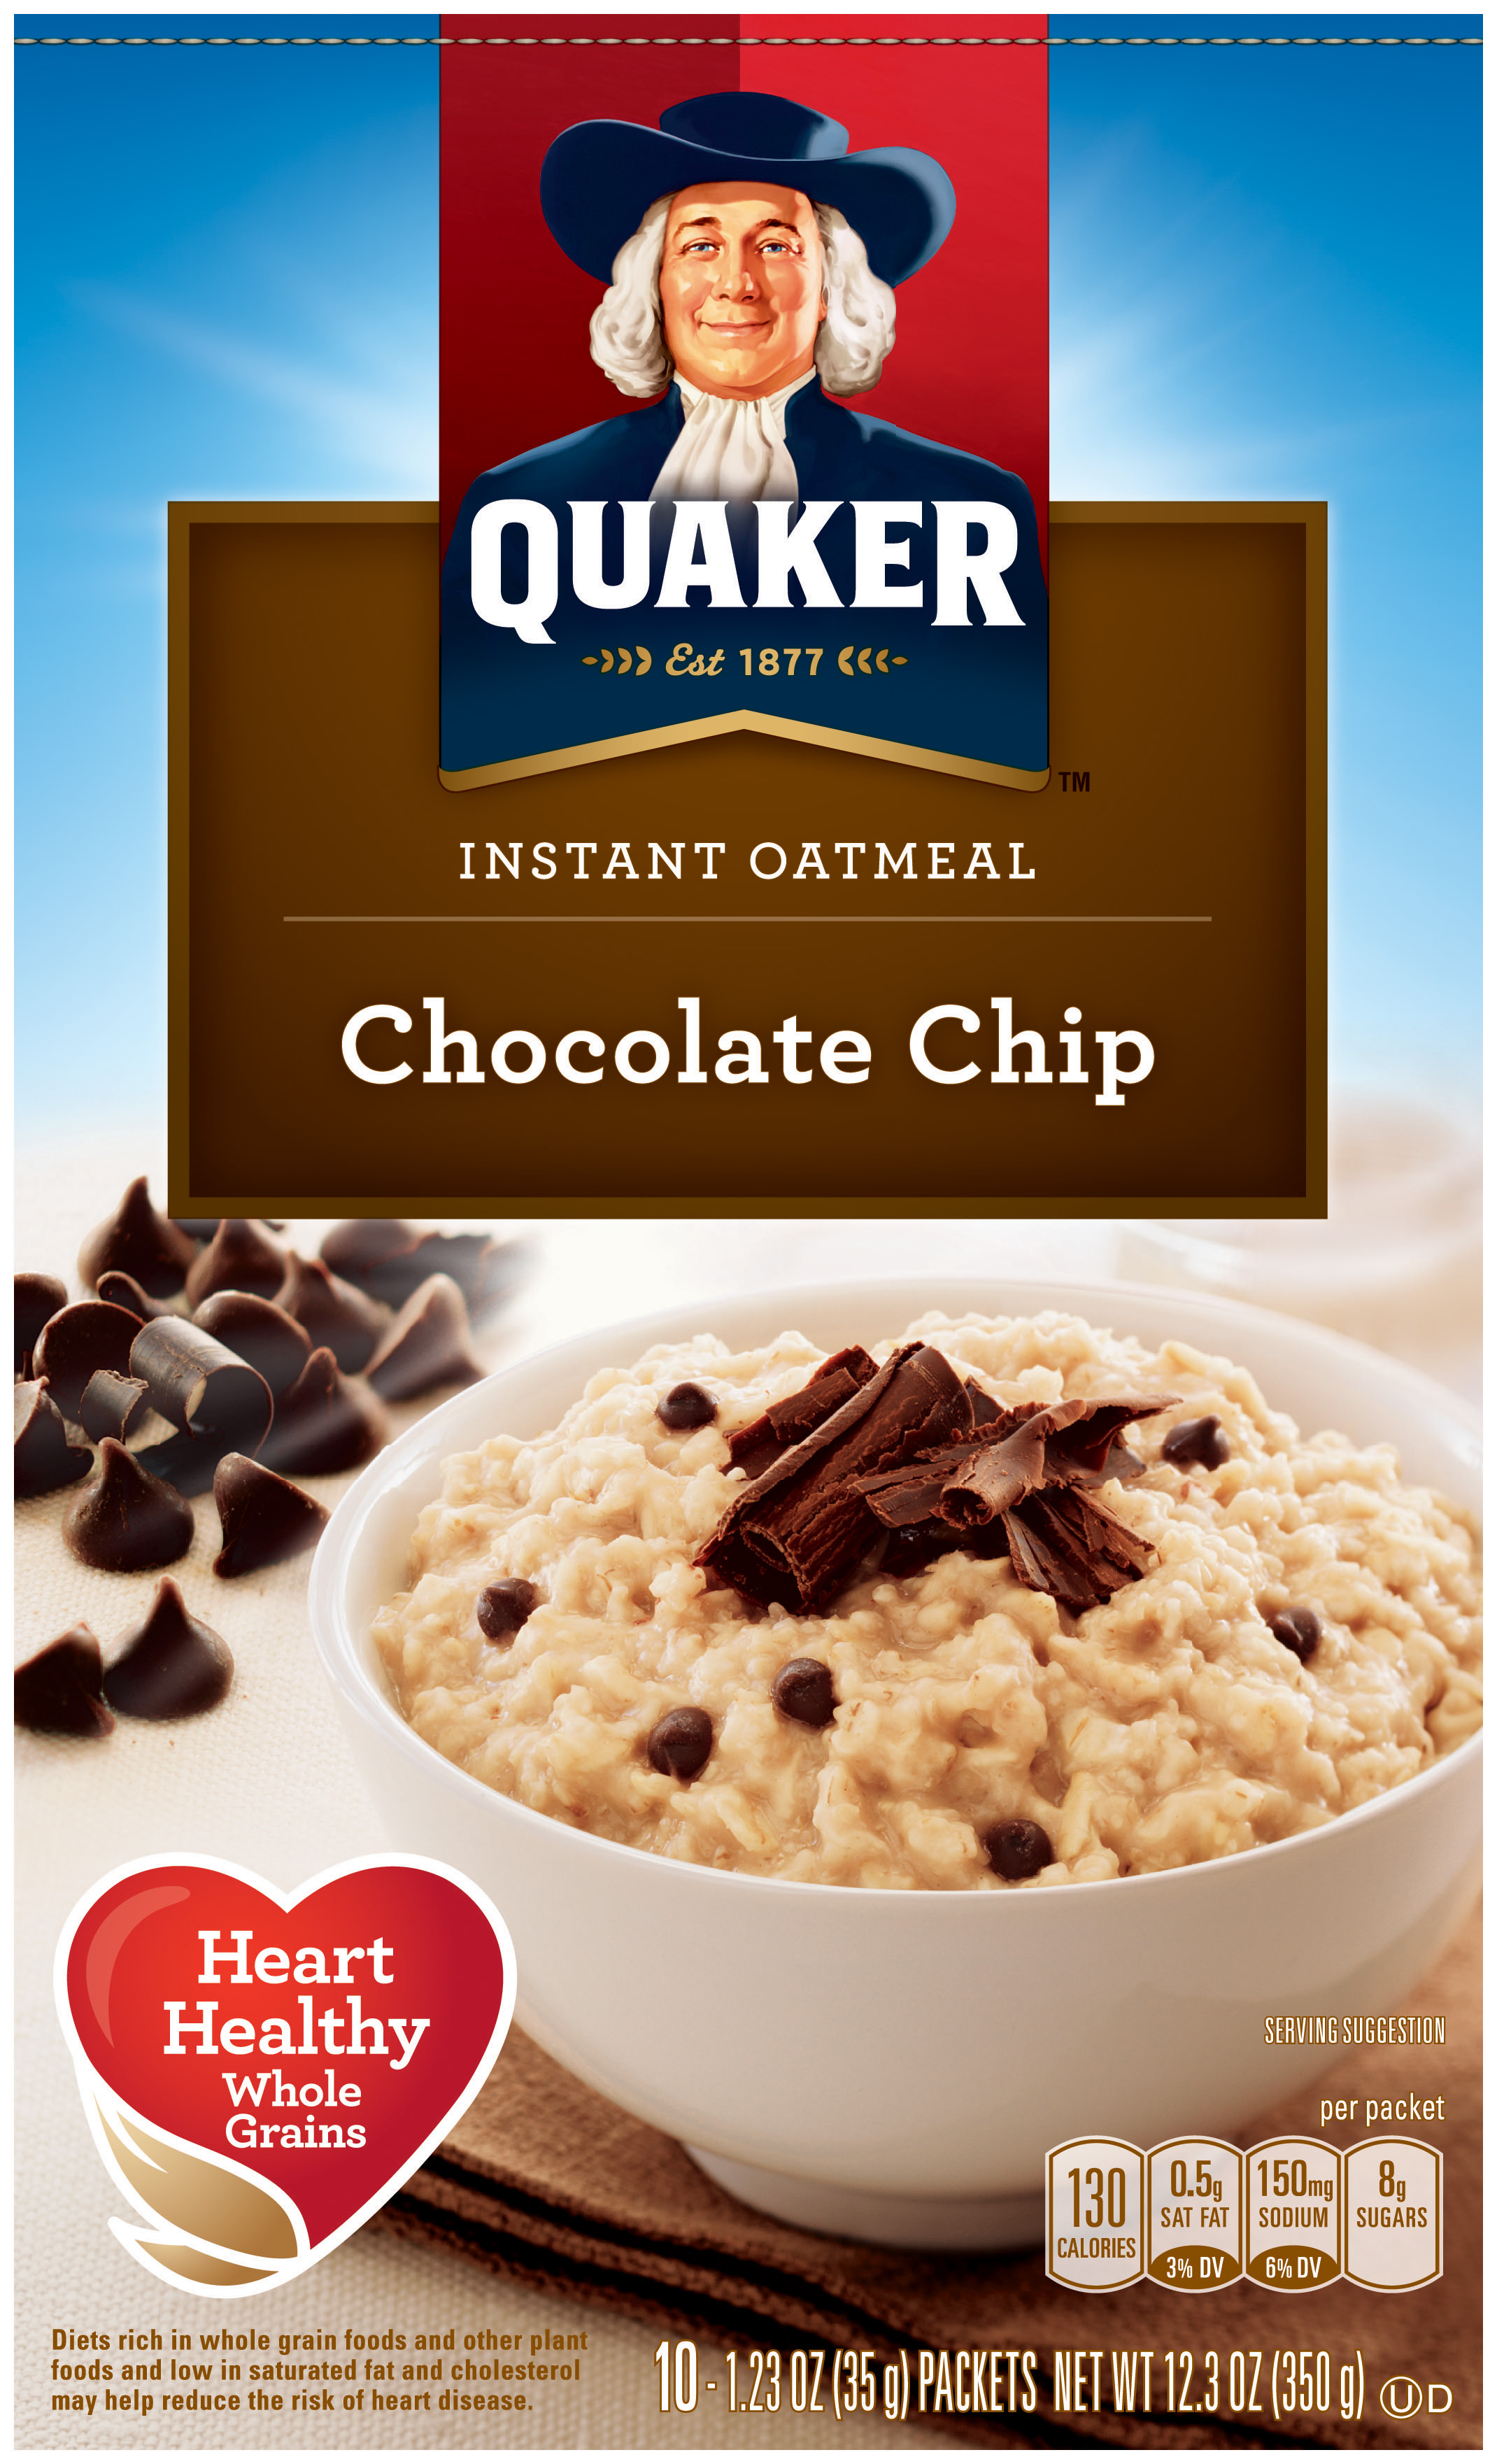 quaker oats sweepstakes 2019 quaker innovations gift box giveaway quakerinsiders 2661